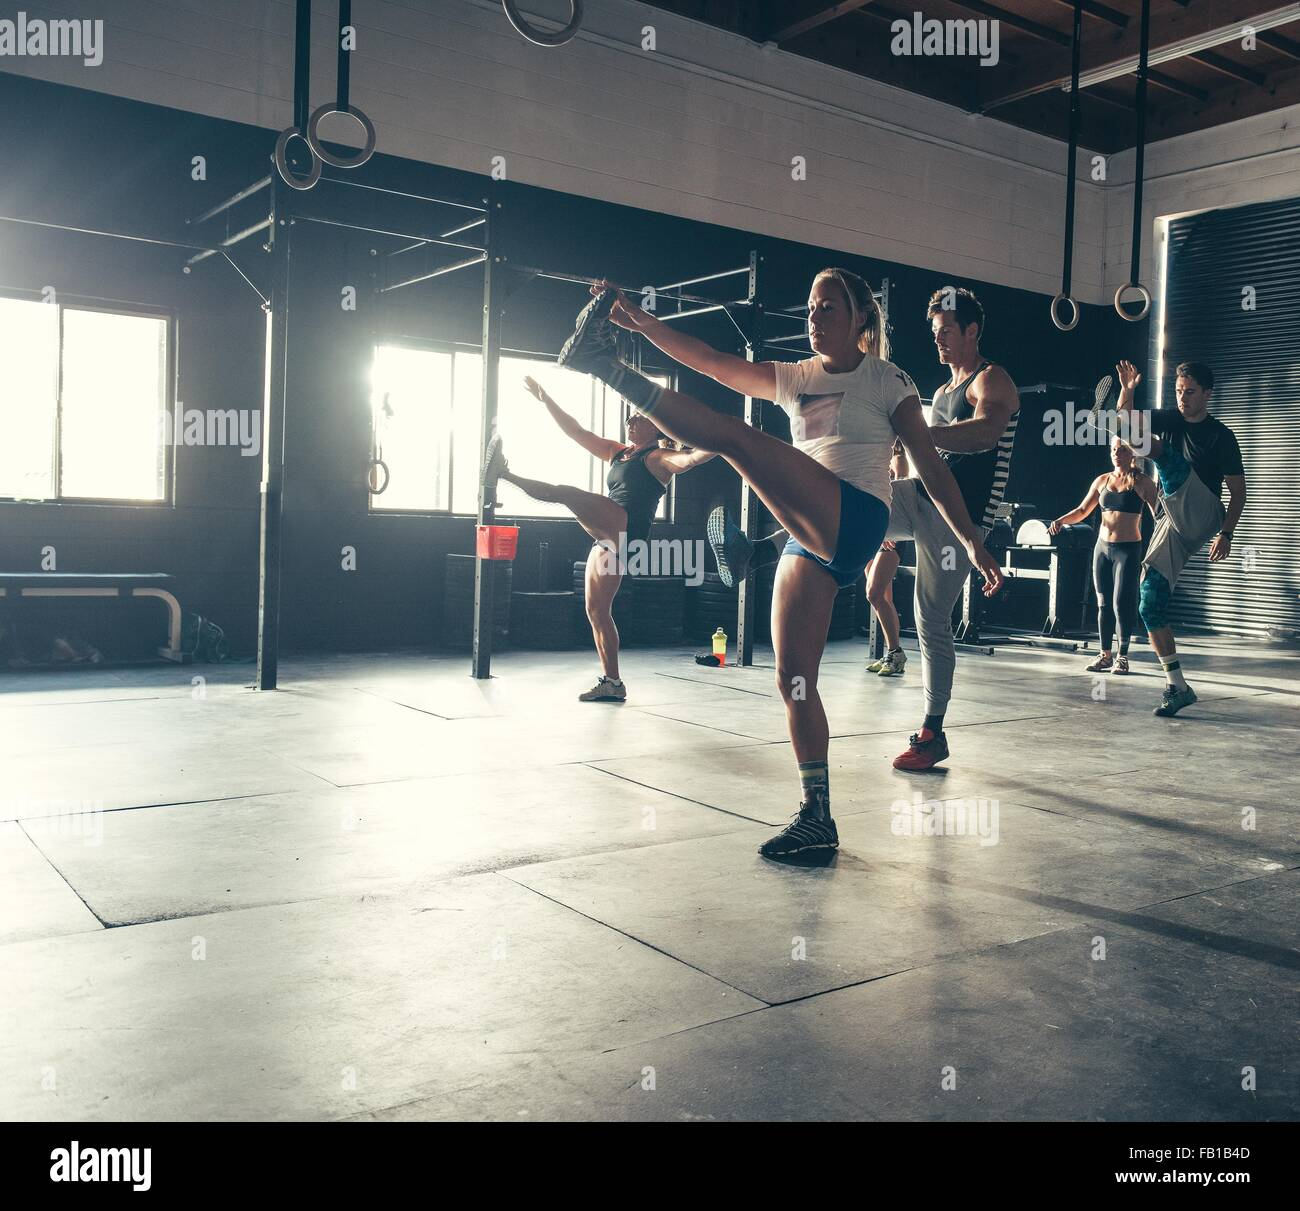 Men and women exercising together in gym - Stock Image